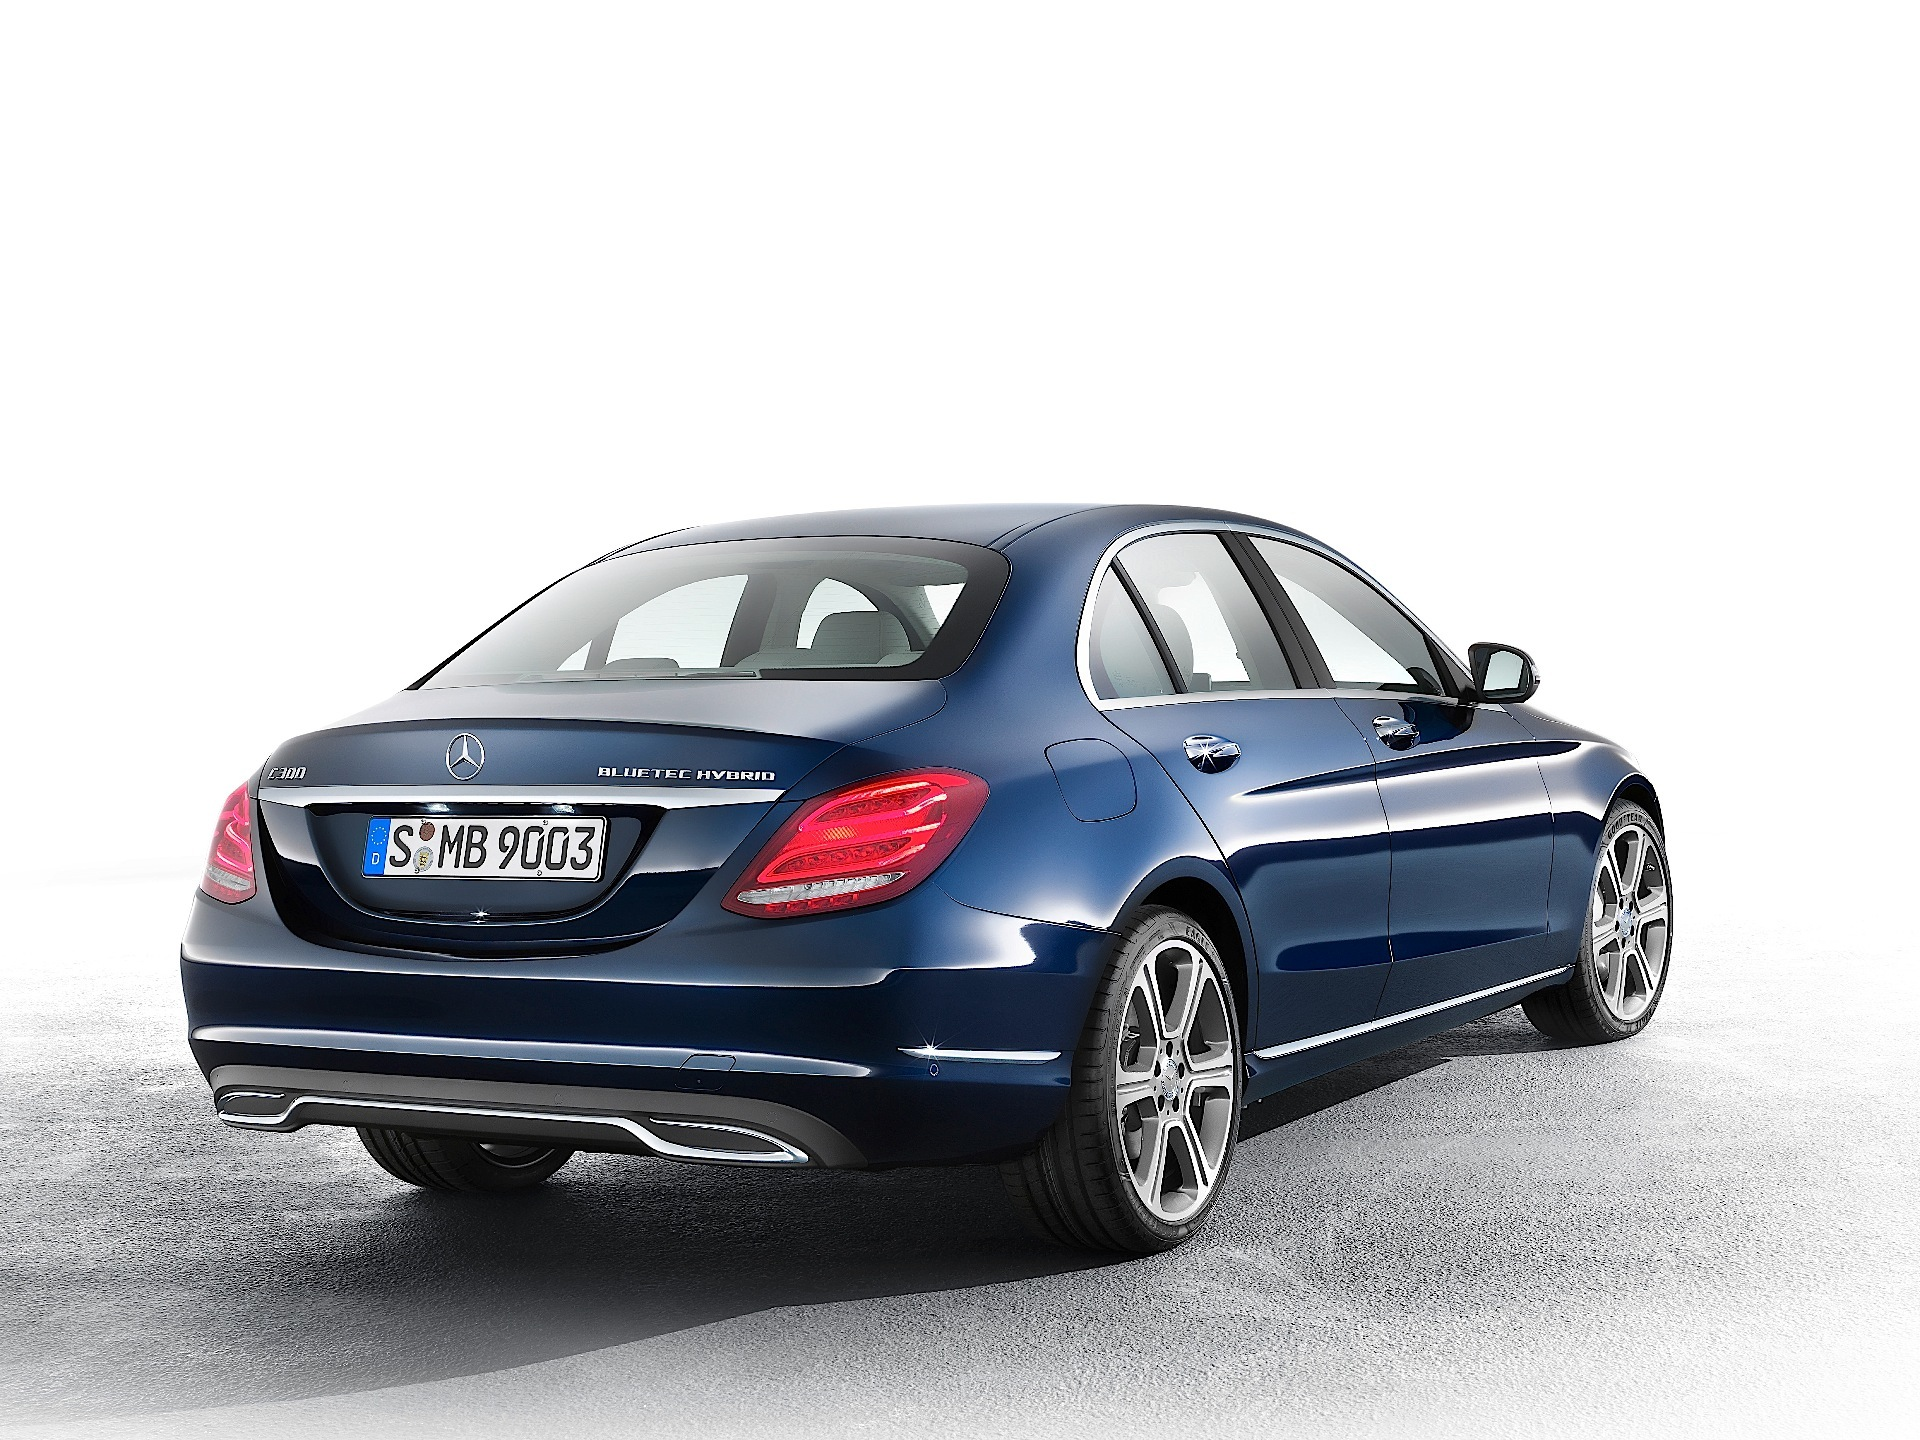 Mercedes benz c class w205 2014 2015 2016 2017 for Mercedes benz blue tec